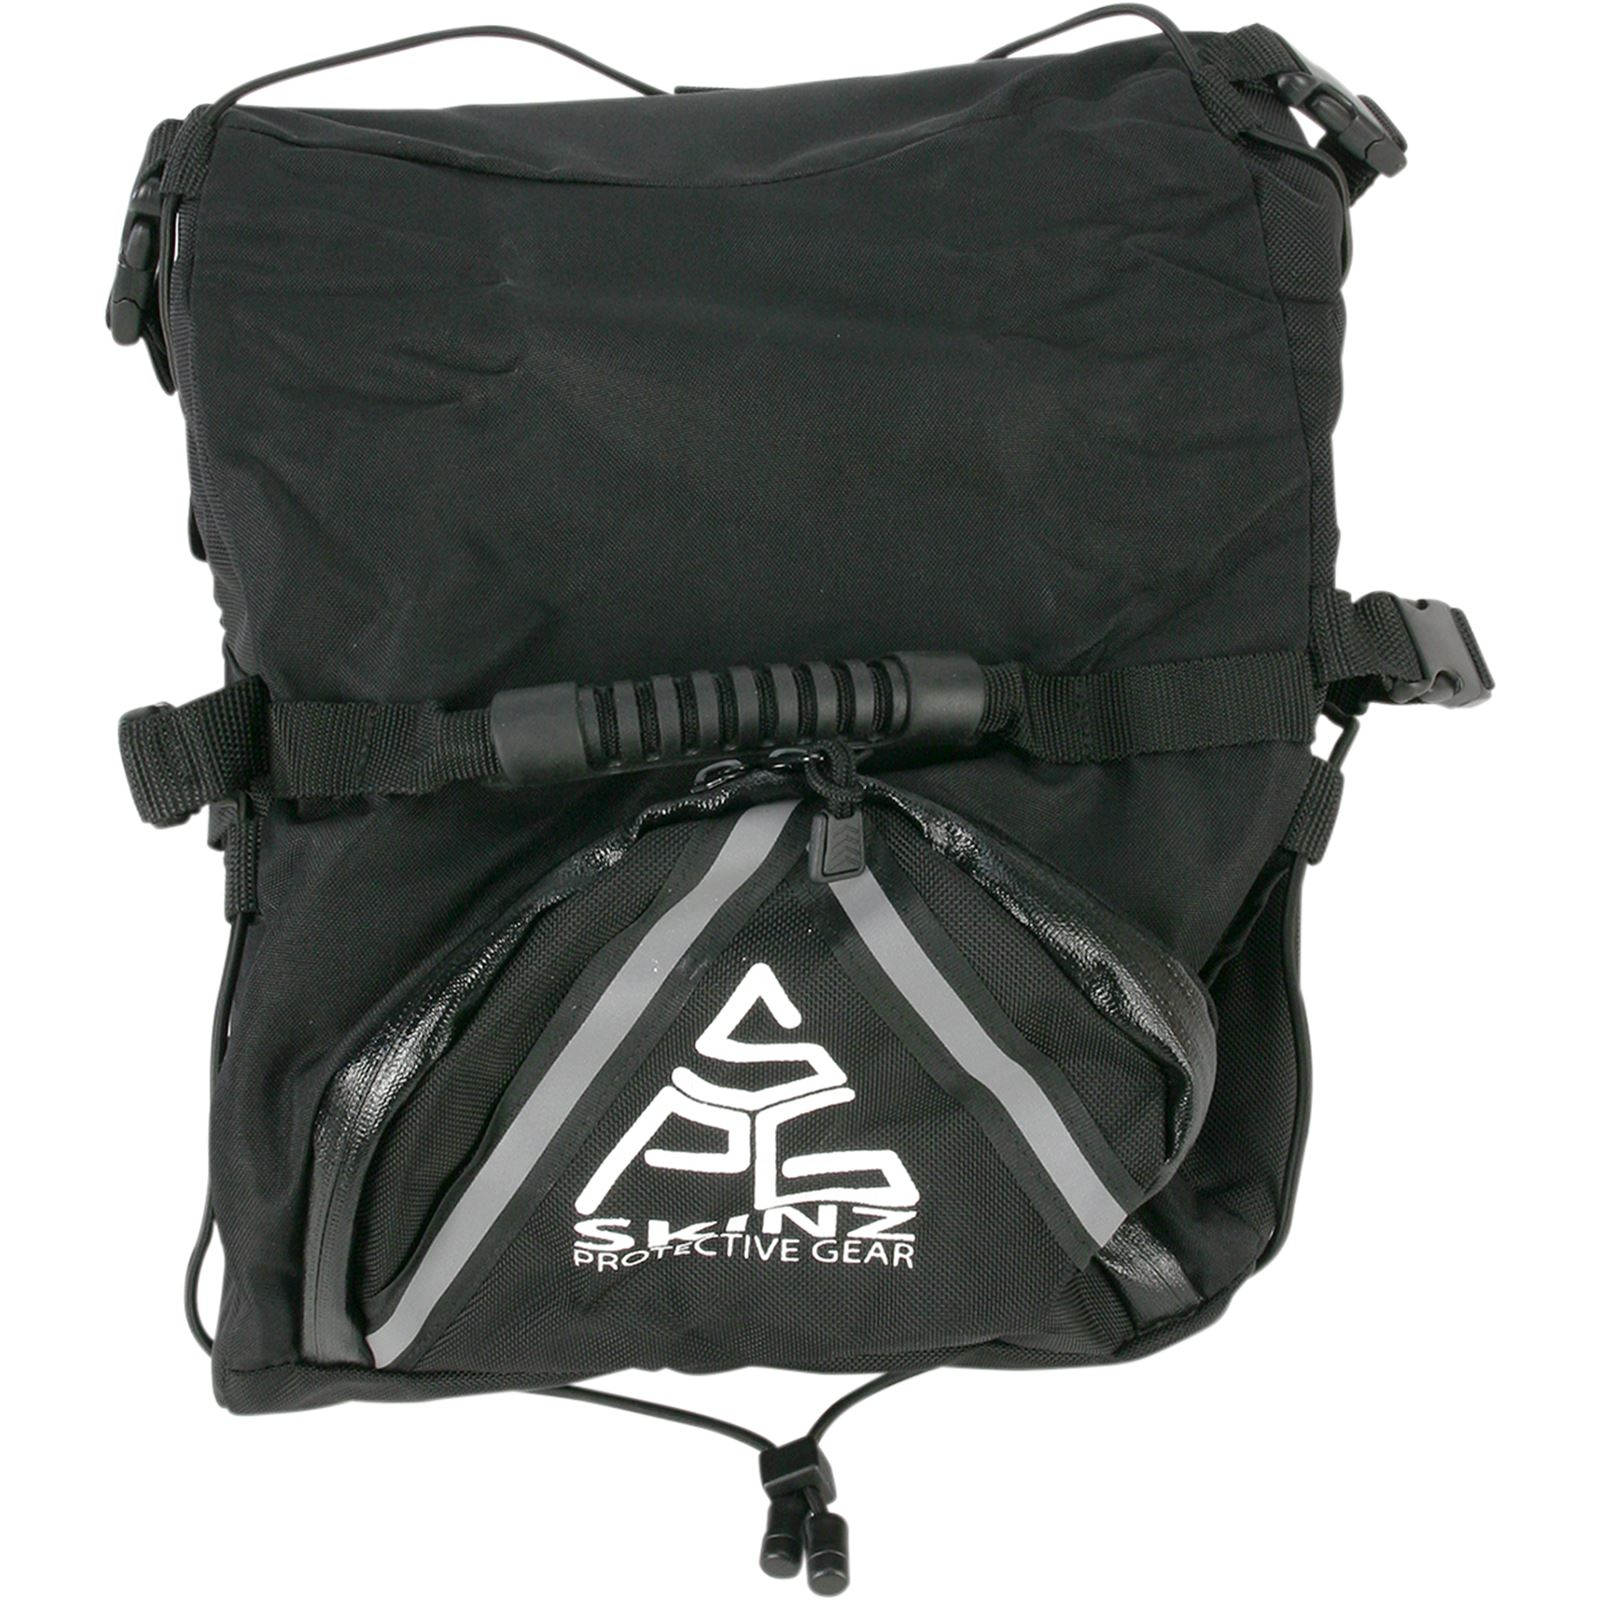 SPG Tunnel Pack